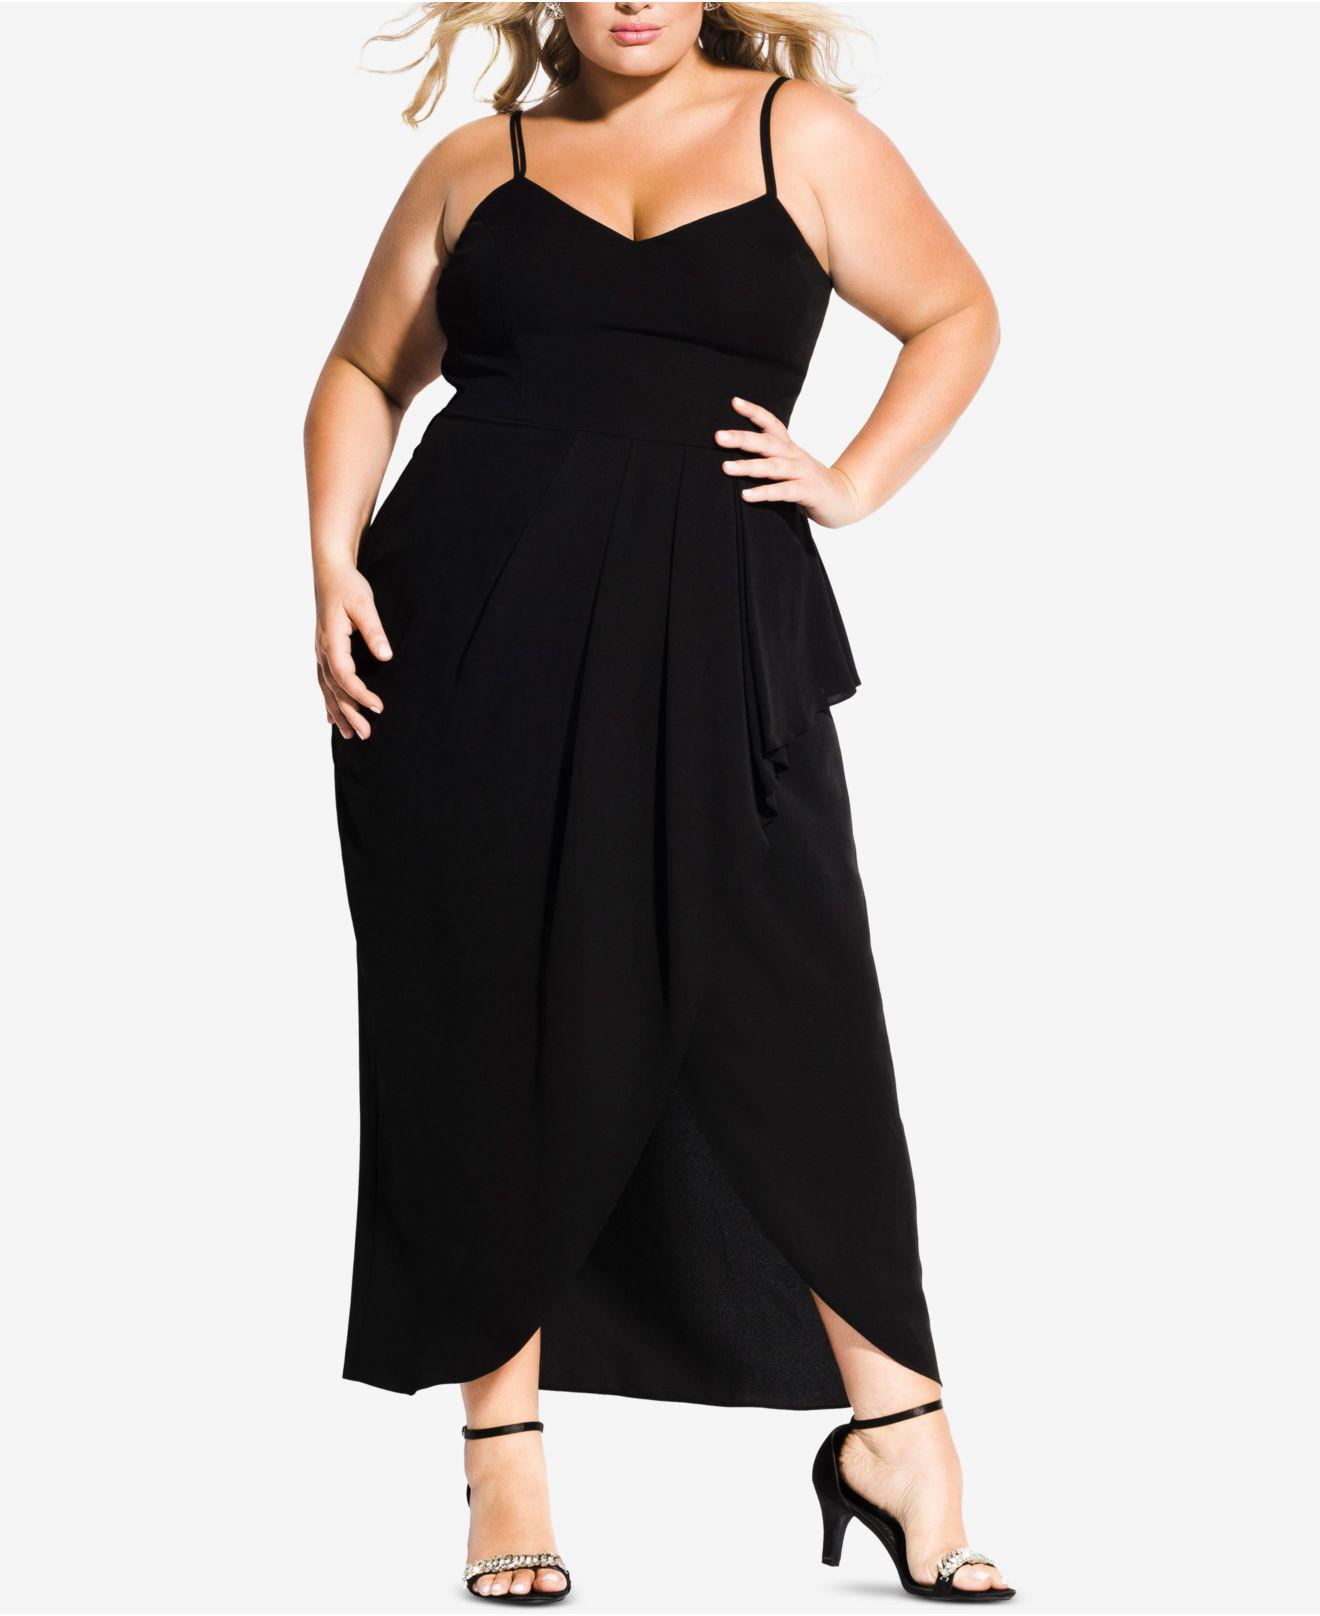 b56f1791b7b Lyst - City Chic Trendy Plus Size Pleated Faux-wrap Maxi Dress in Black